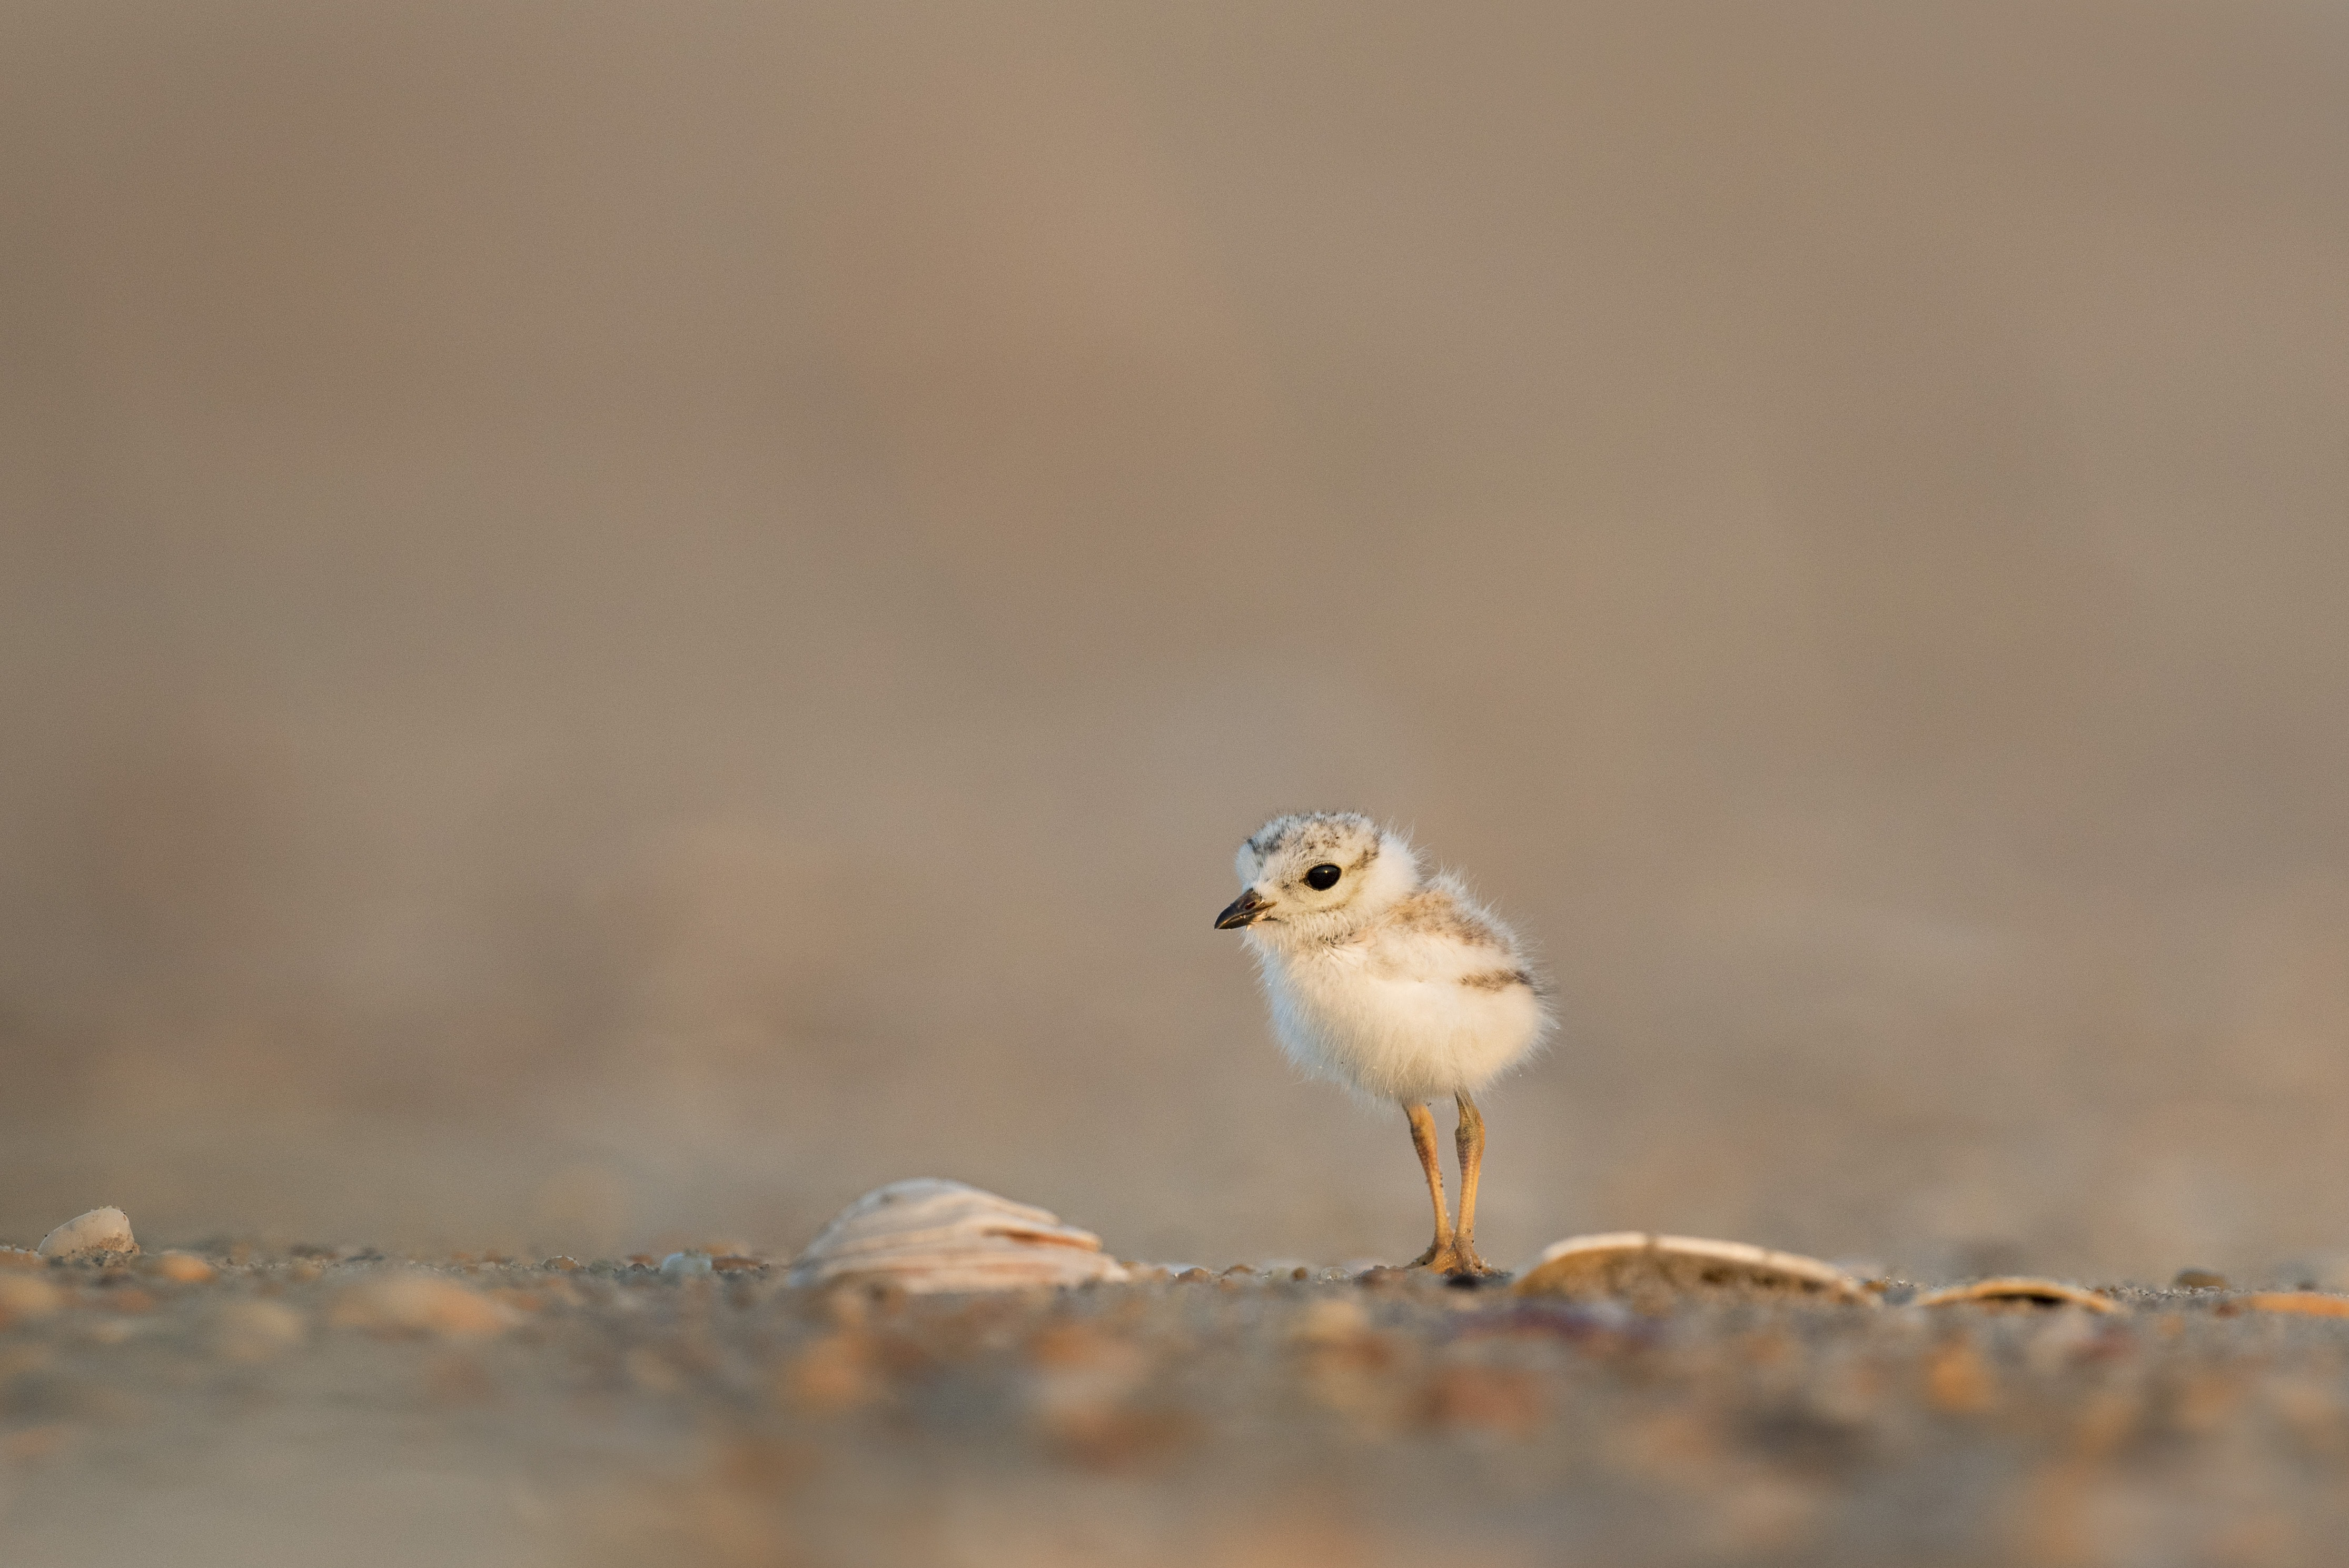 focus photography of chick on gray ground